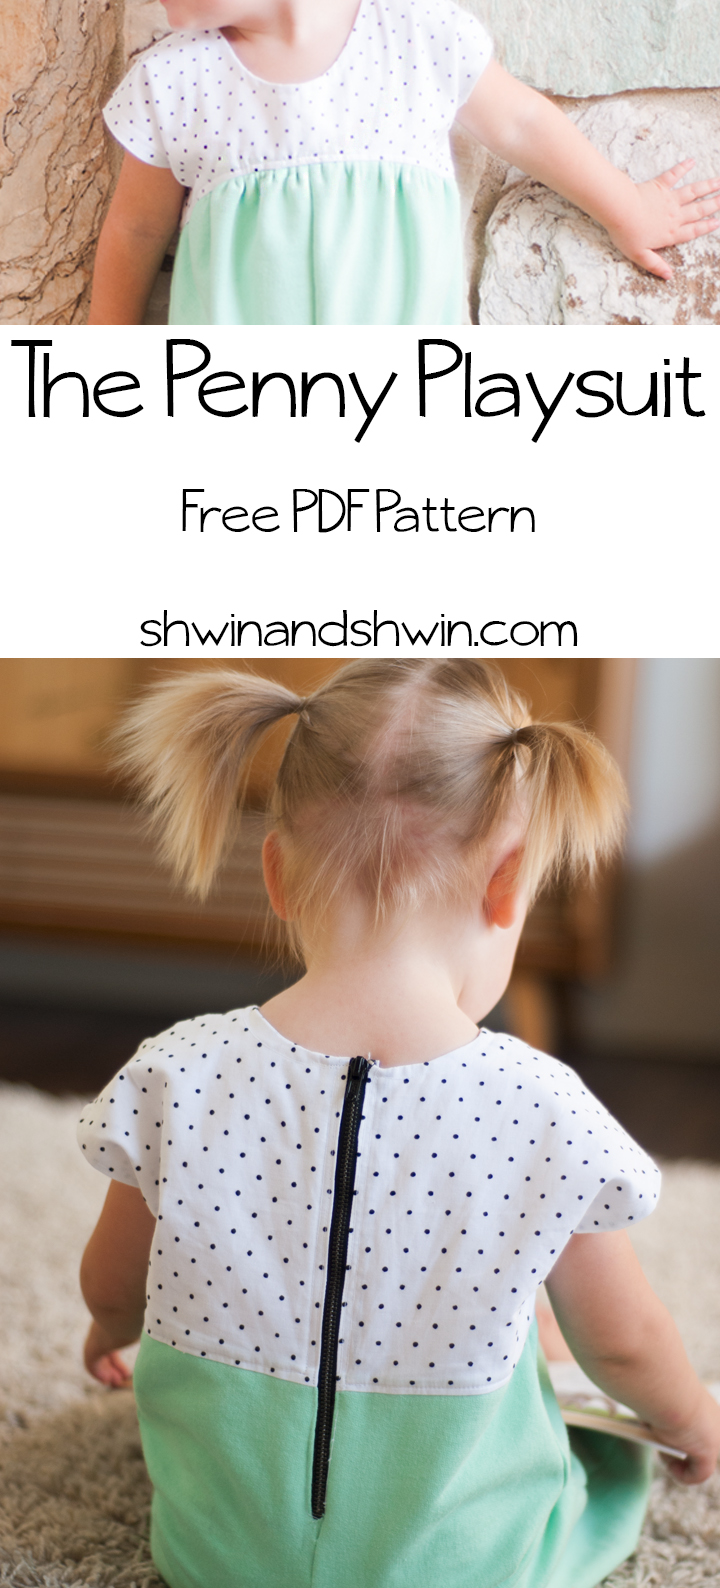 The Penny Playsuit || Free PDF Pattern || Shwin&Shwin